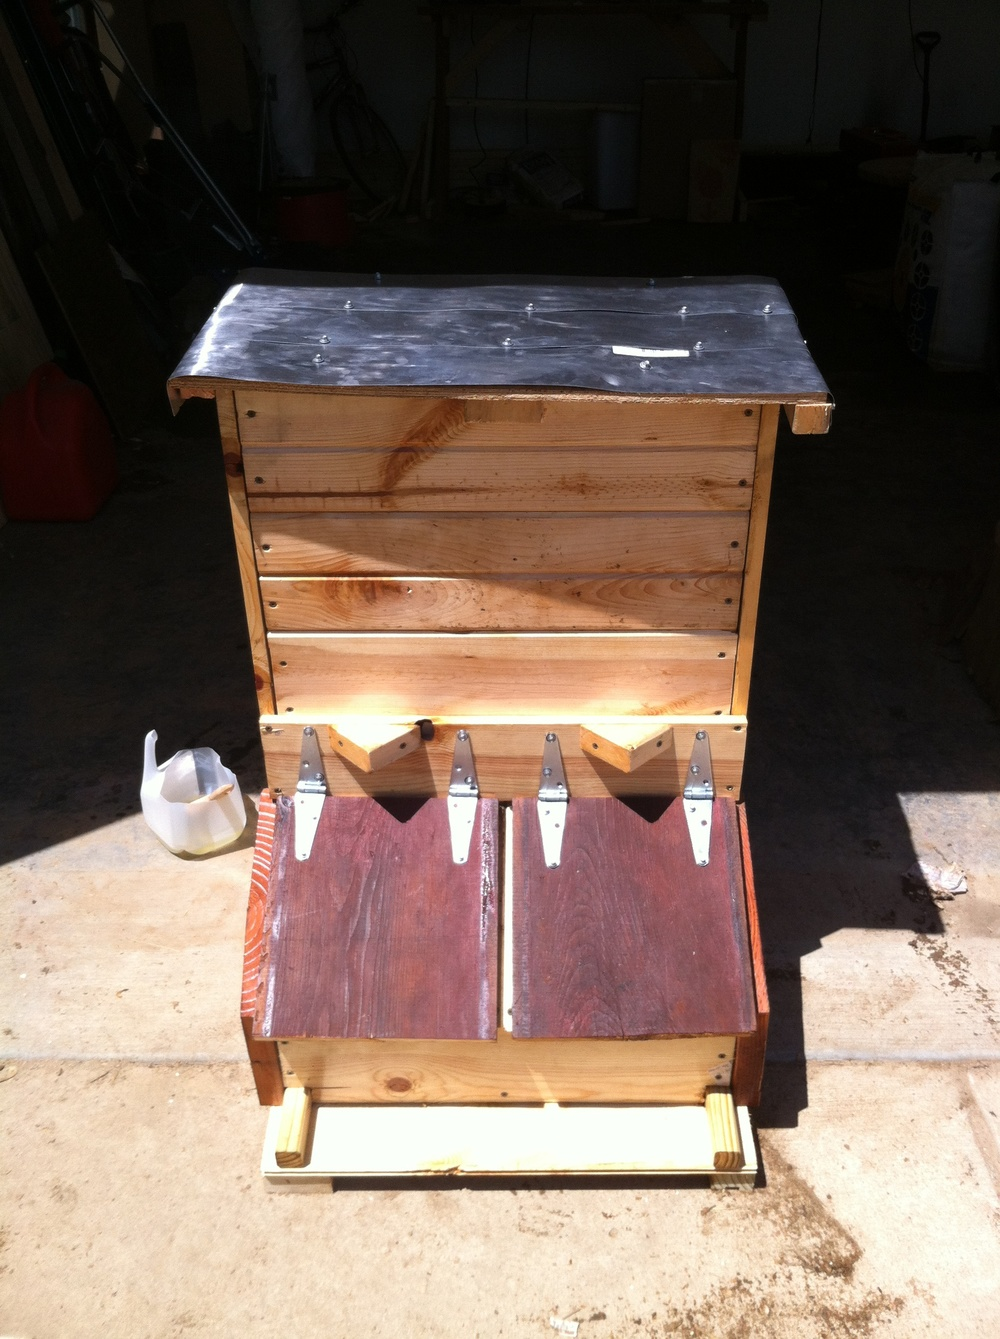 Pig feeder after being stained